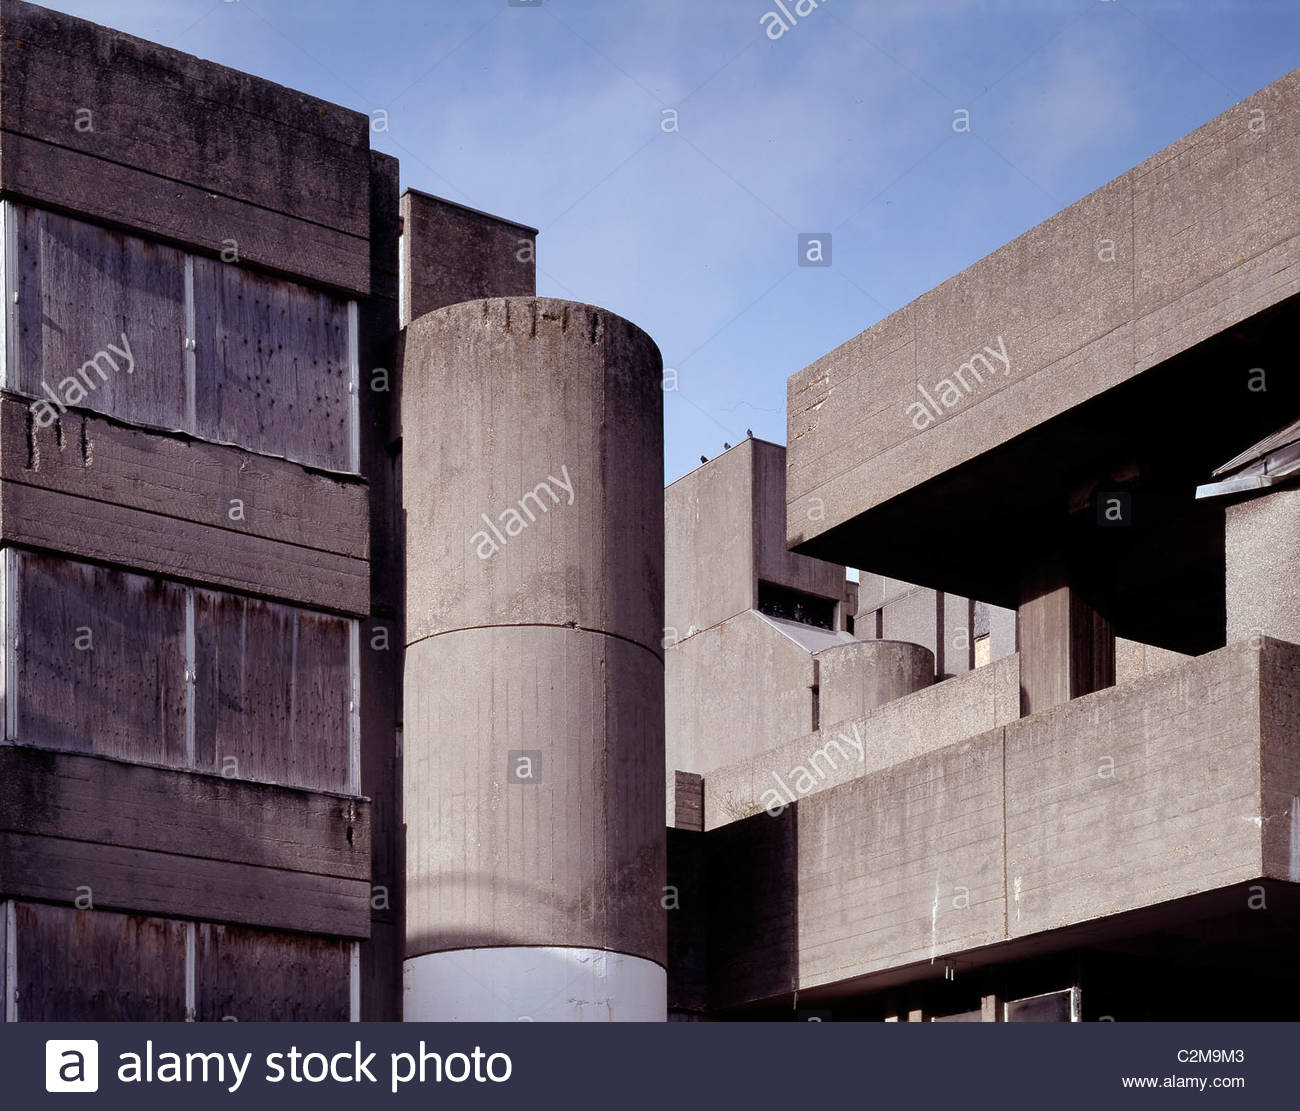 Tricorn Centre, Portsmouth now demolished - Stock Image